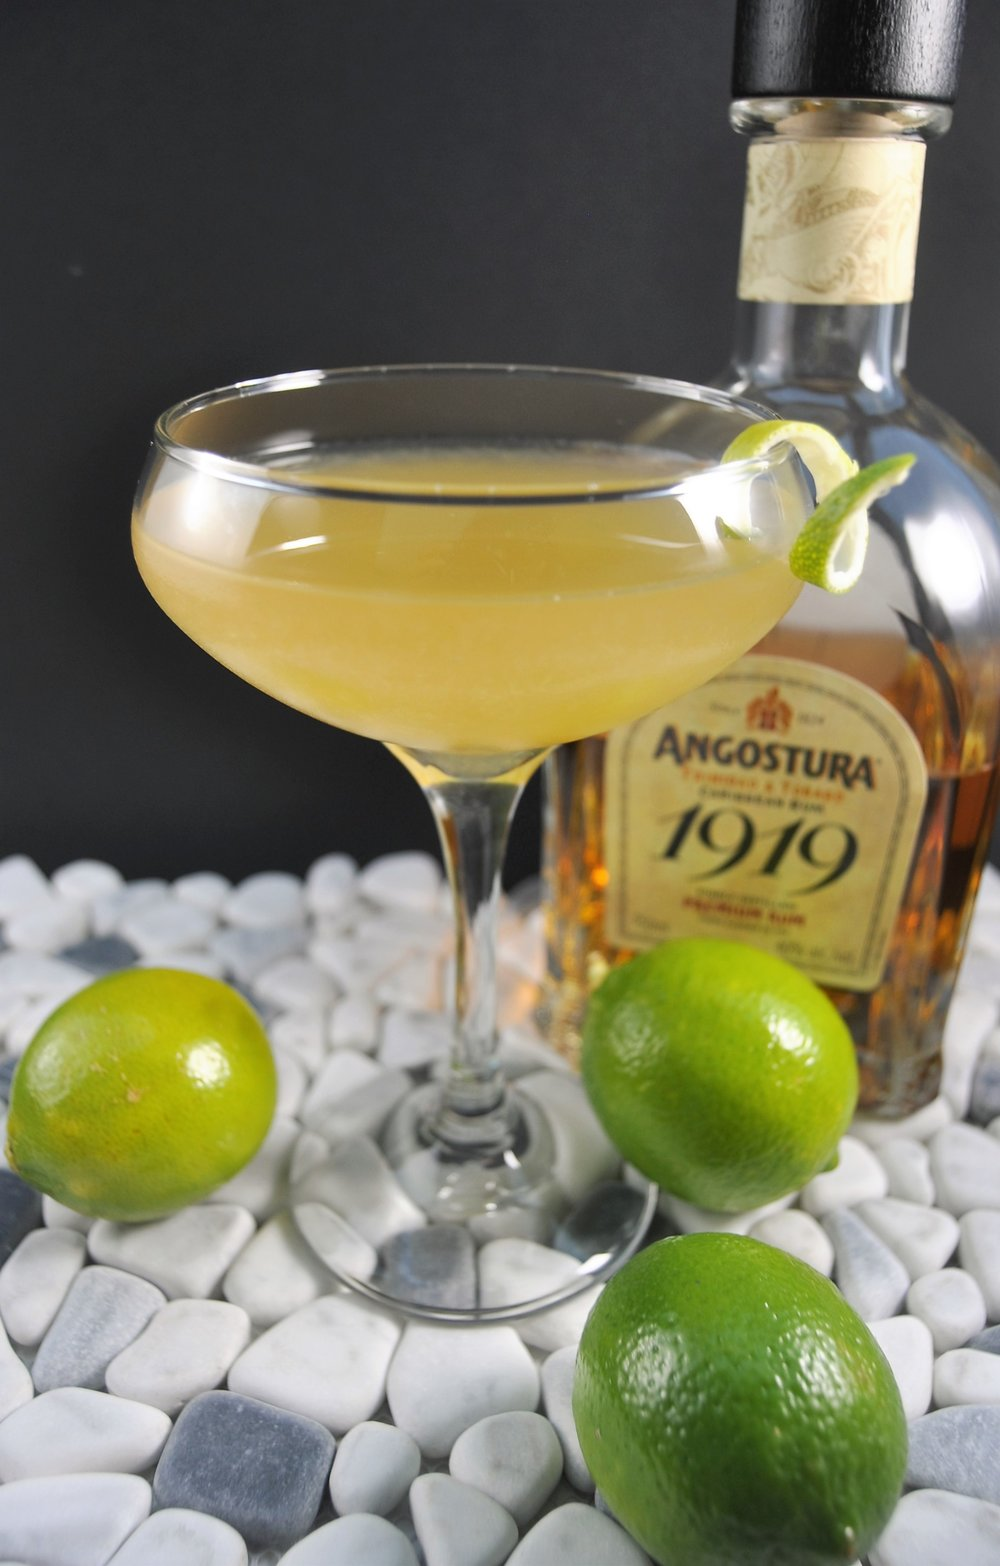 One version of the daquiri I made with Angostura 1919.